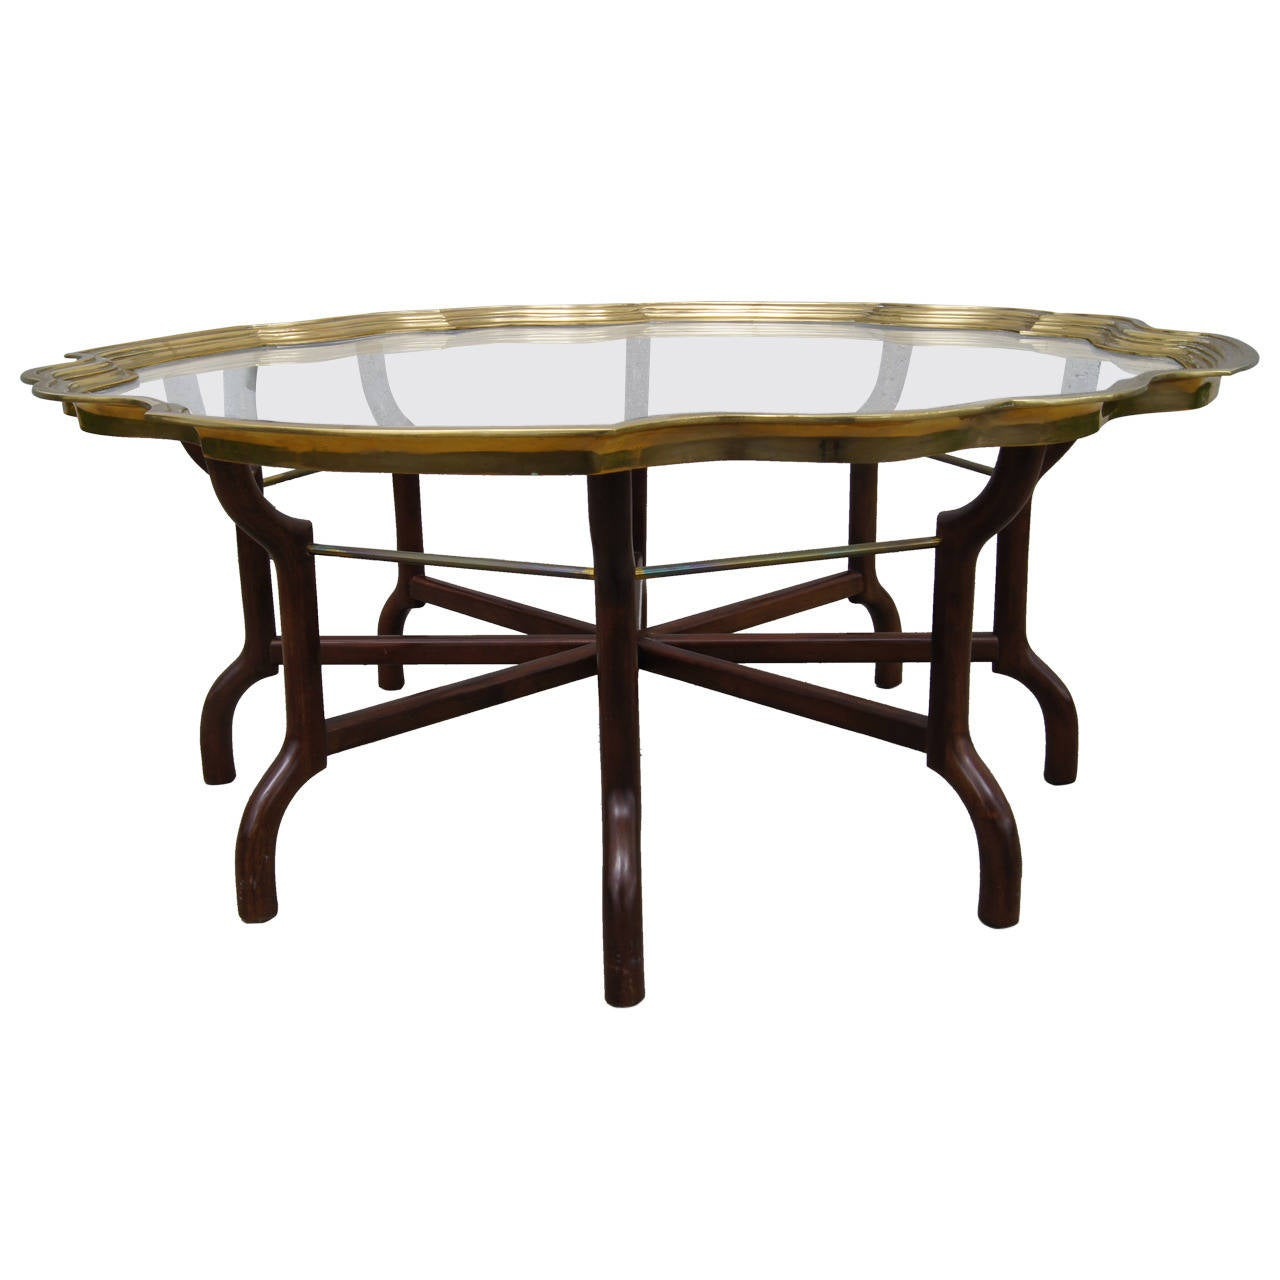 Brass and glass tray top coffee table by baker for sale at 1stdibs Baker coffee table